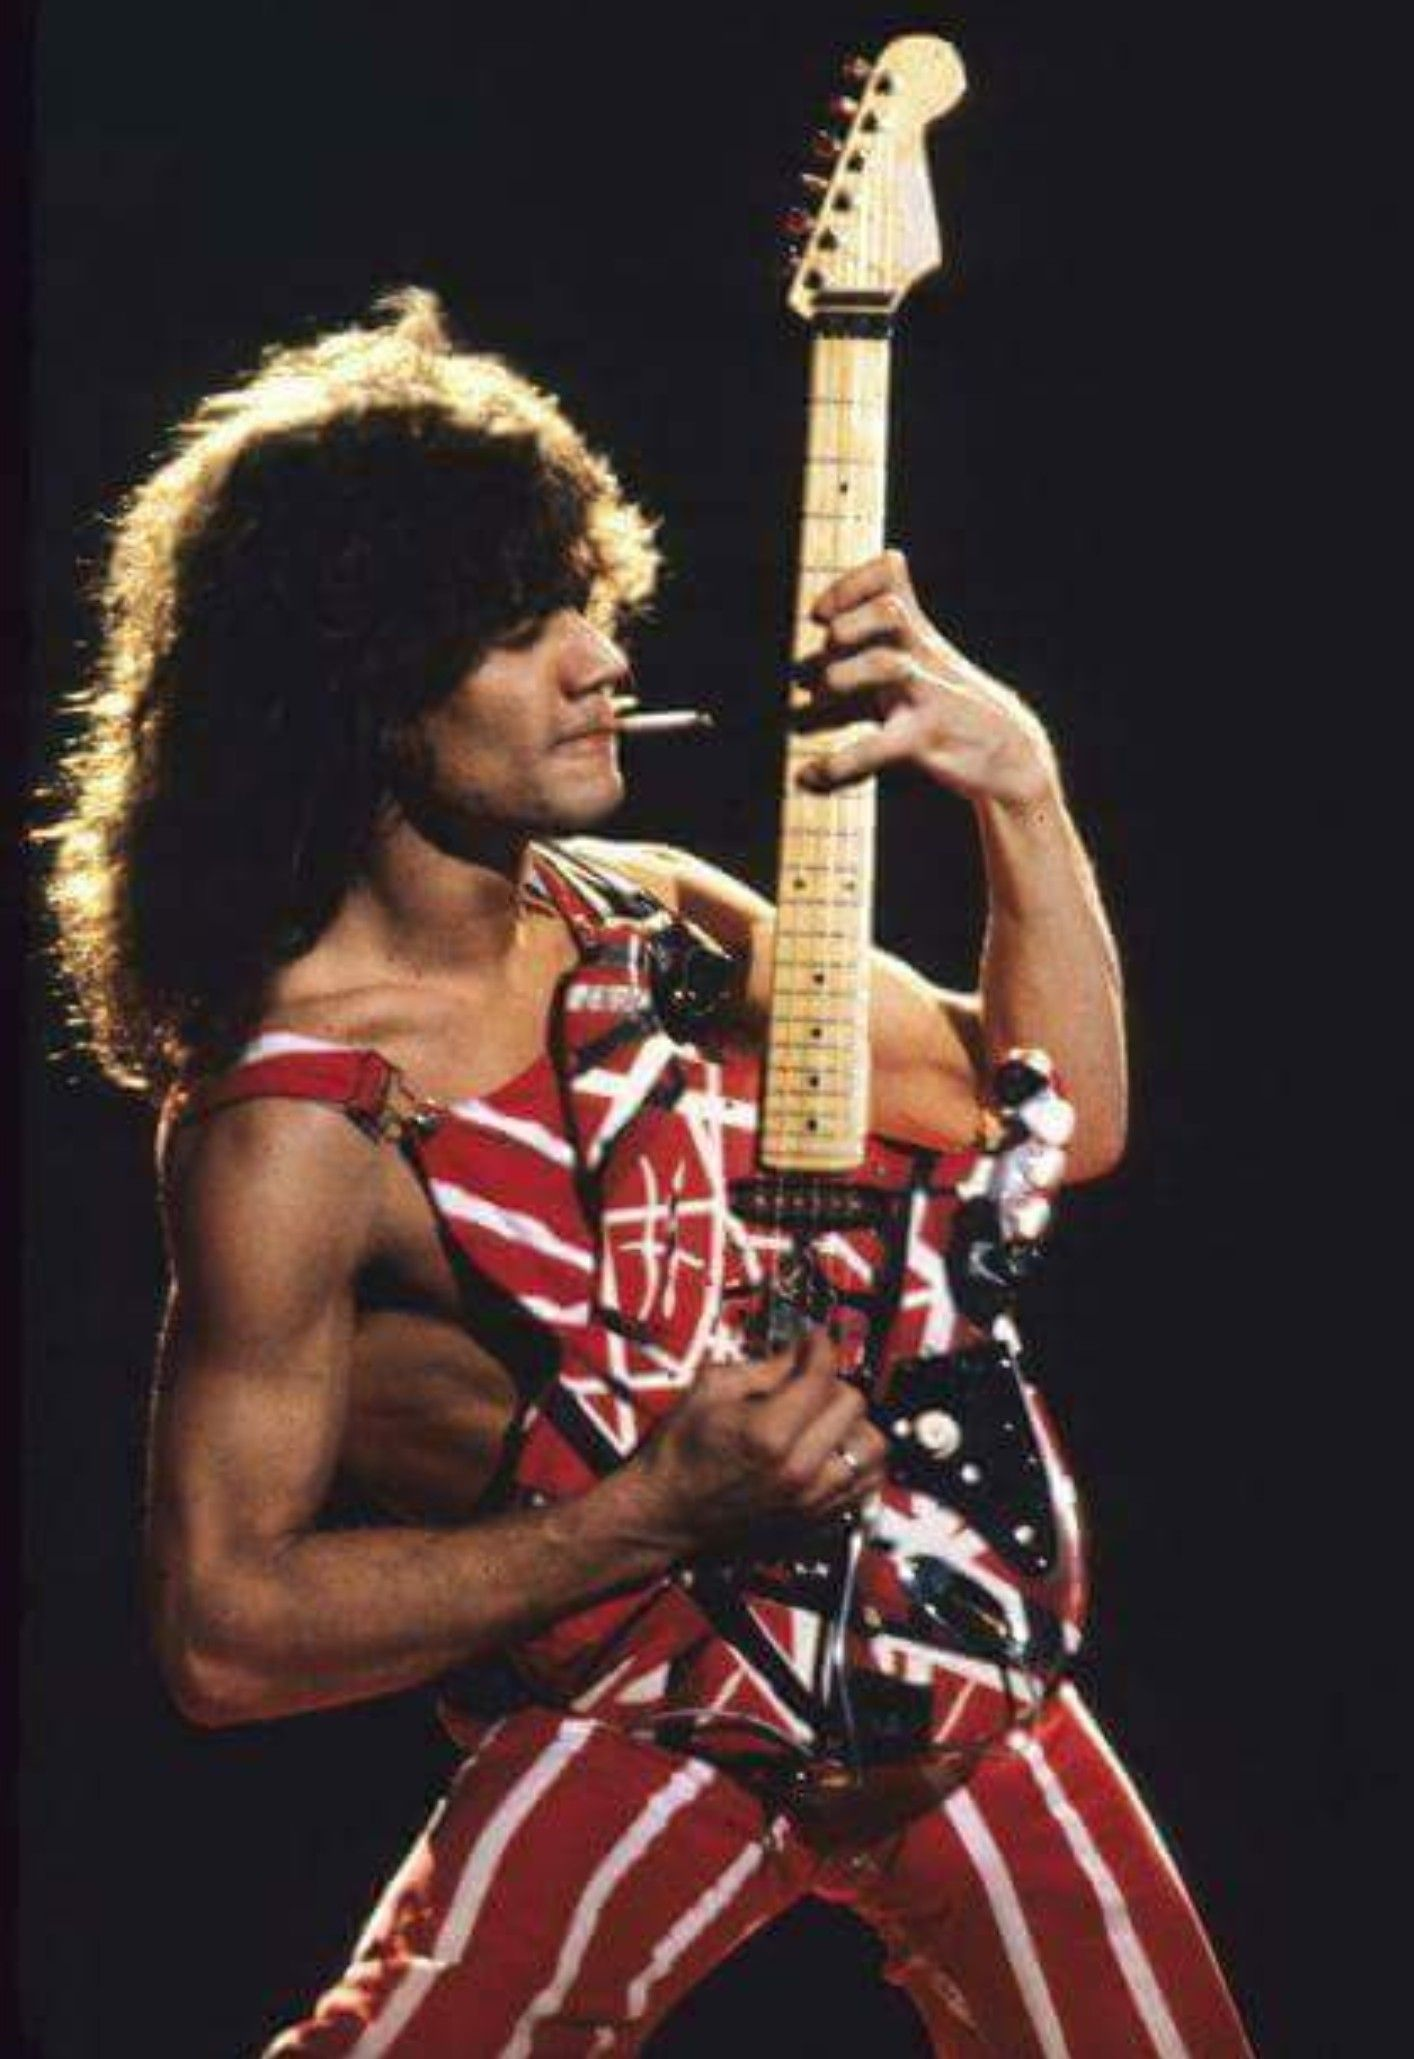 Pin By Sherri Tyler On Actor S Actresses Artist Van Halen Eddie Van Halen Rock Music